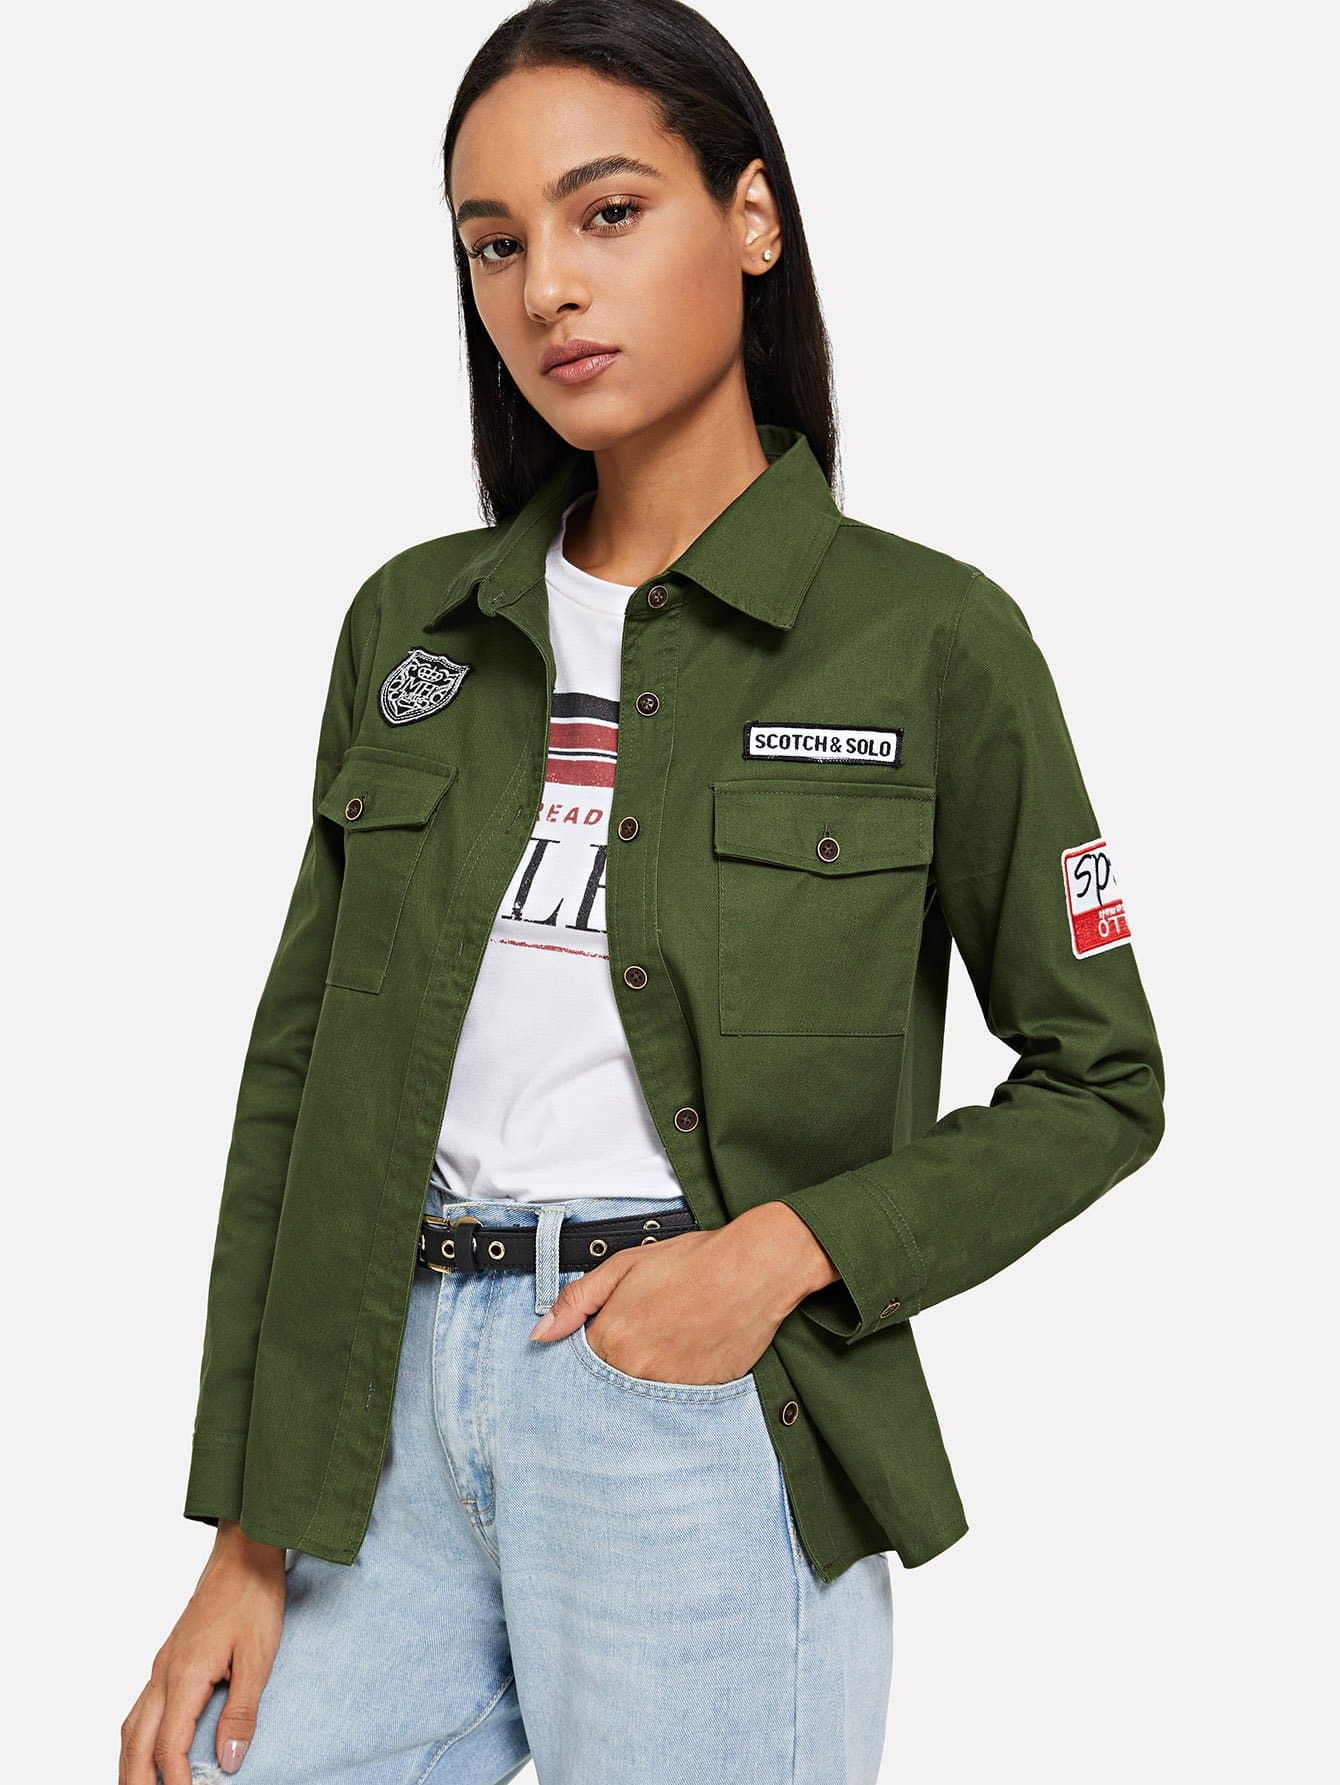 Dual Pocket Patched Jacket